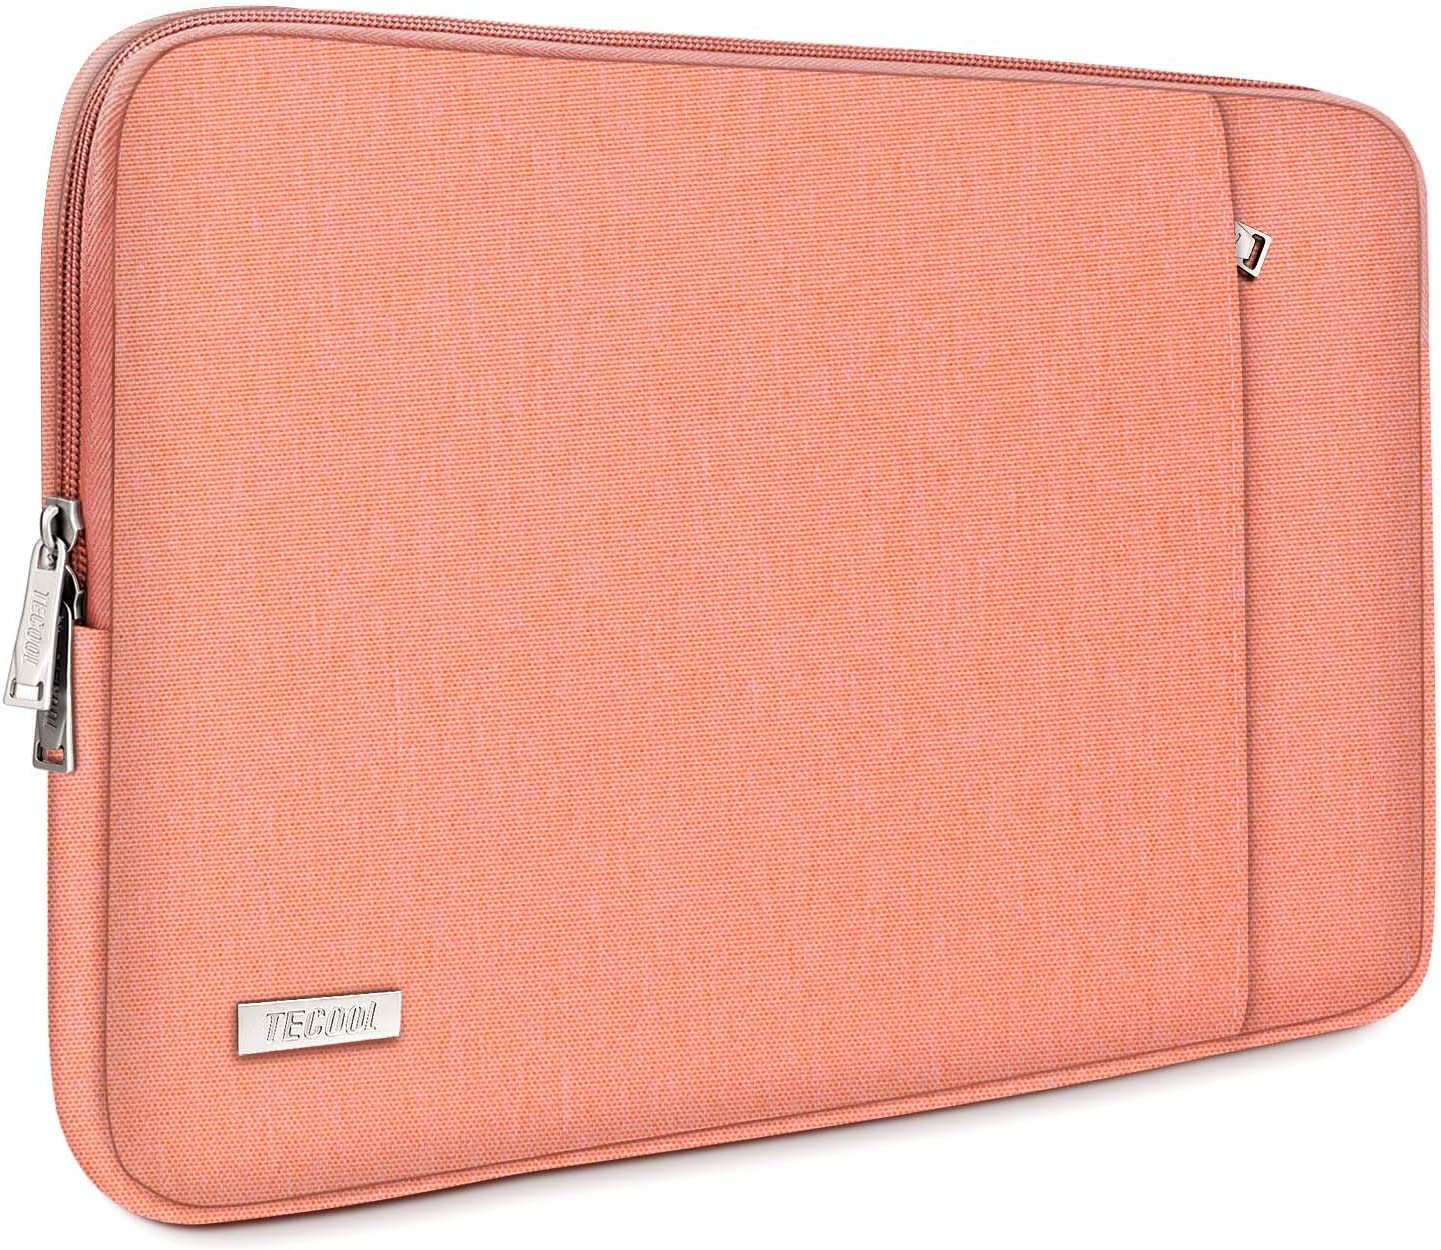 "TECOOL Protective Laptop Sleeve Case w/Front Pocket for 13.3"" Laptops & 14"" Ultra-Slim Lenovo Yoga C740/Flex 5, ASUS ZenBook 14/VivoBook S14, 13.5"" Surface Book 3 2, 14"" HP Pavilion x360, Peach"